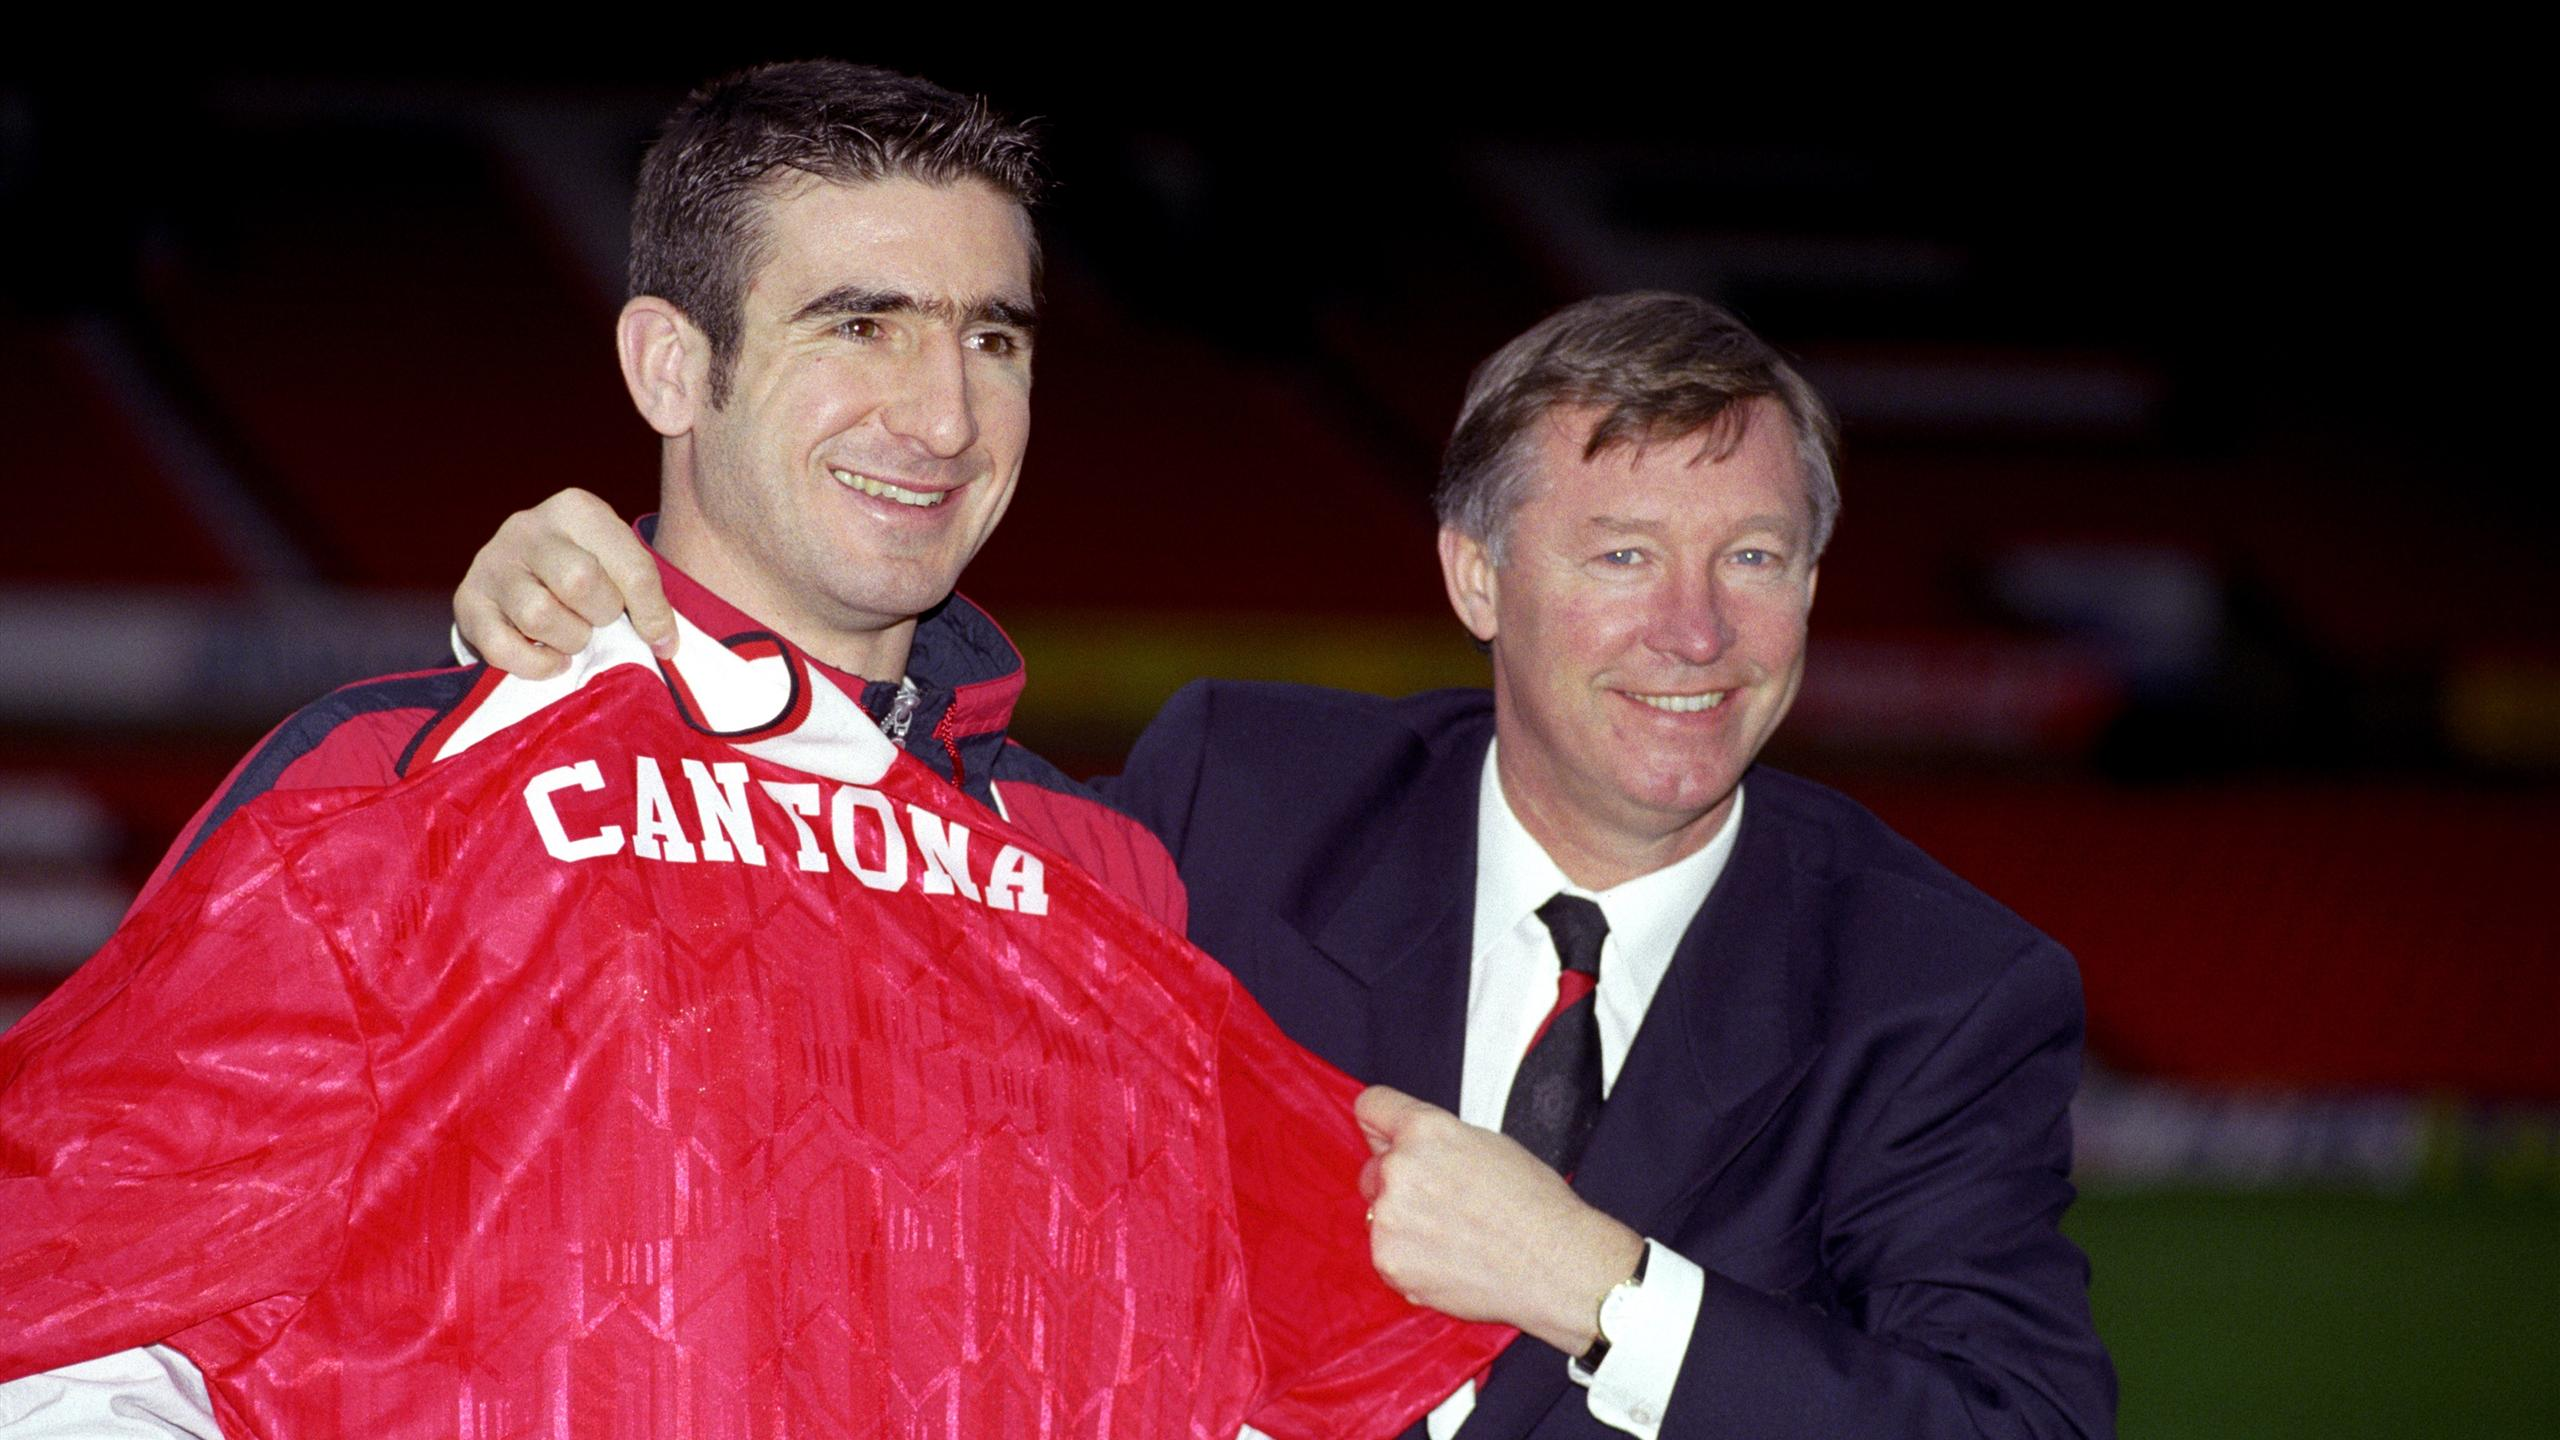 Eric Cantona poses with Alex Ferguson after signing for Manchester United